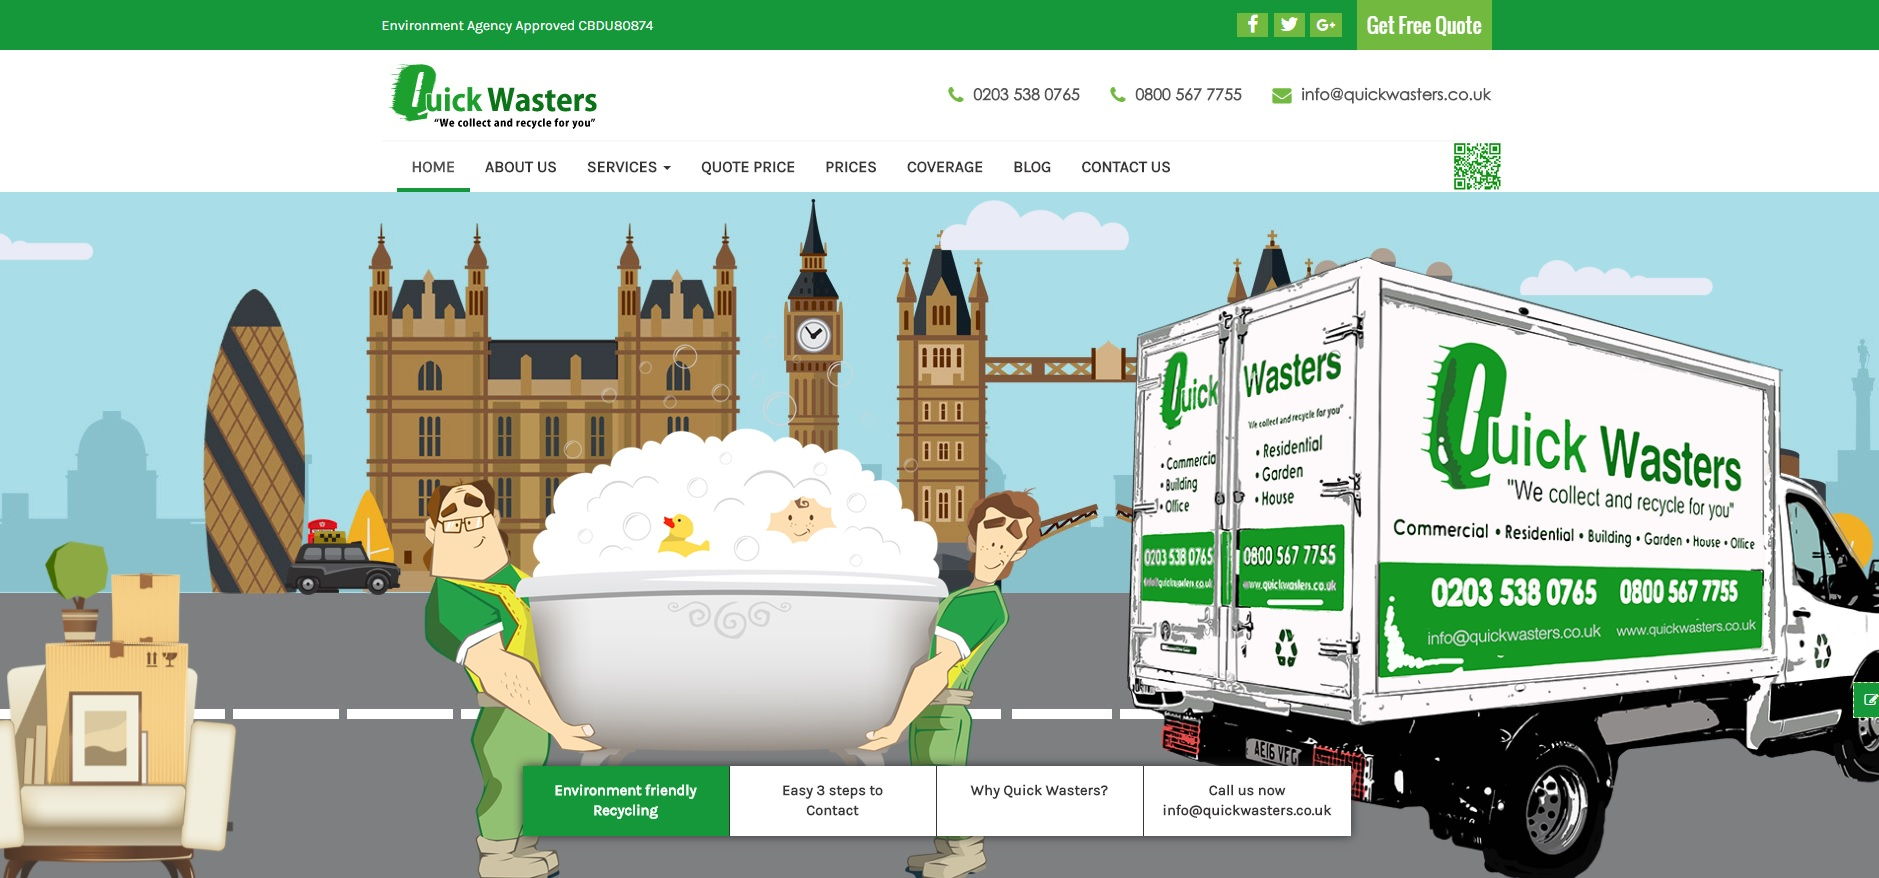 Quick Wasters Ltd. New Website Design by ClickDo